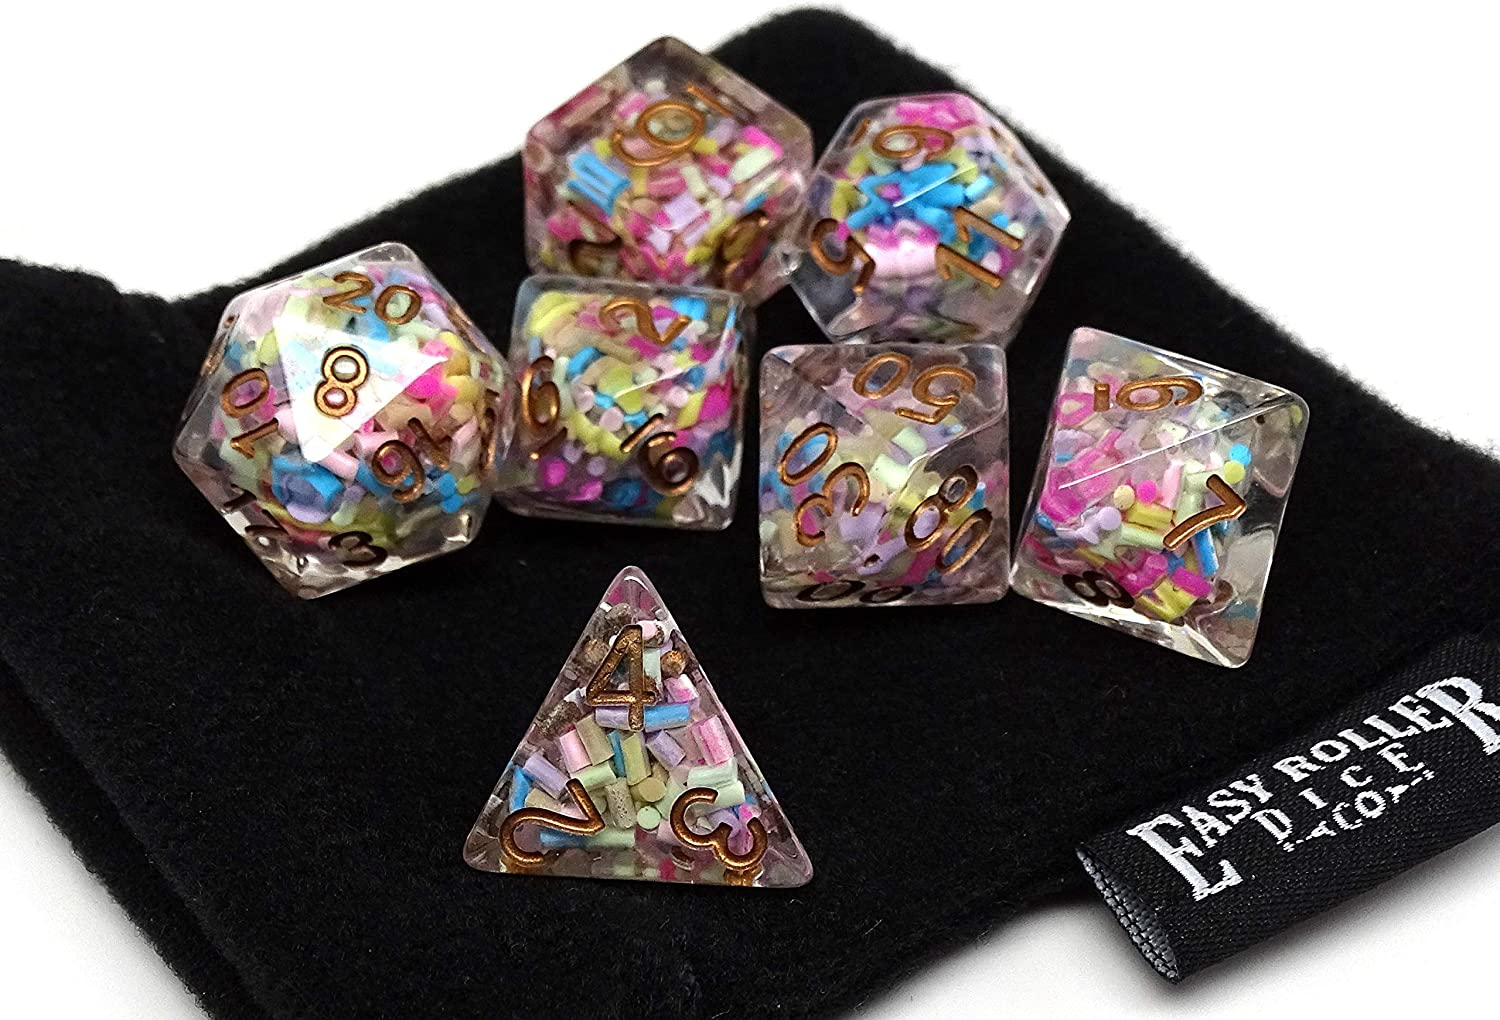 7 Piece Sprinkle Translucent Polyhedral Dice Set with Gold Numbering- Unique RPG Dice Set for Tabletop Gaming - Includes a Free Small Dice Bag